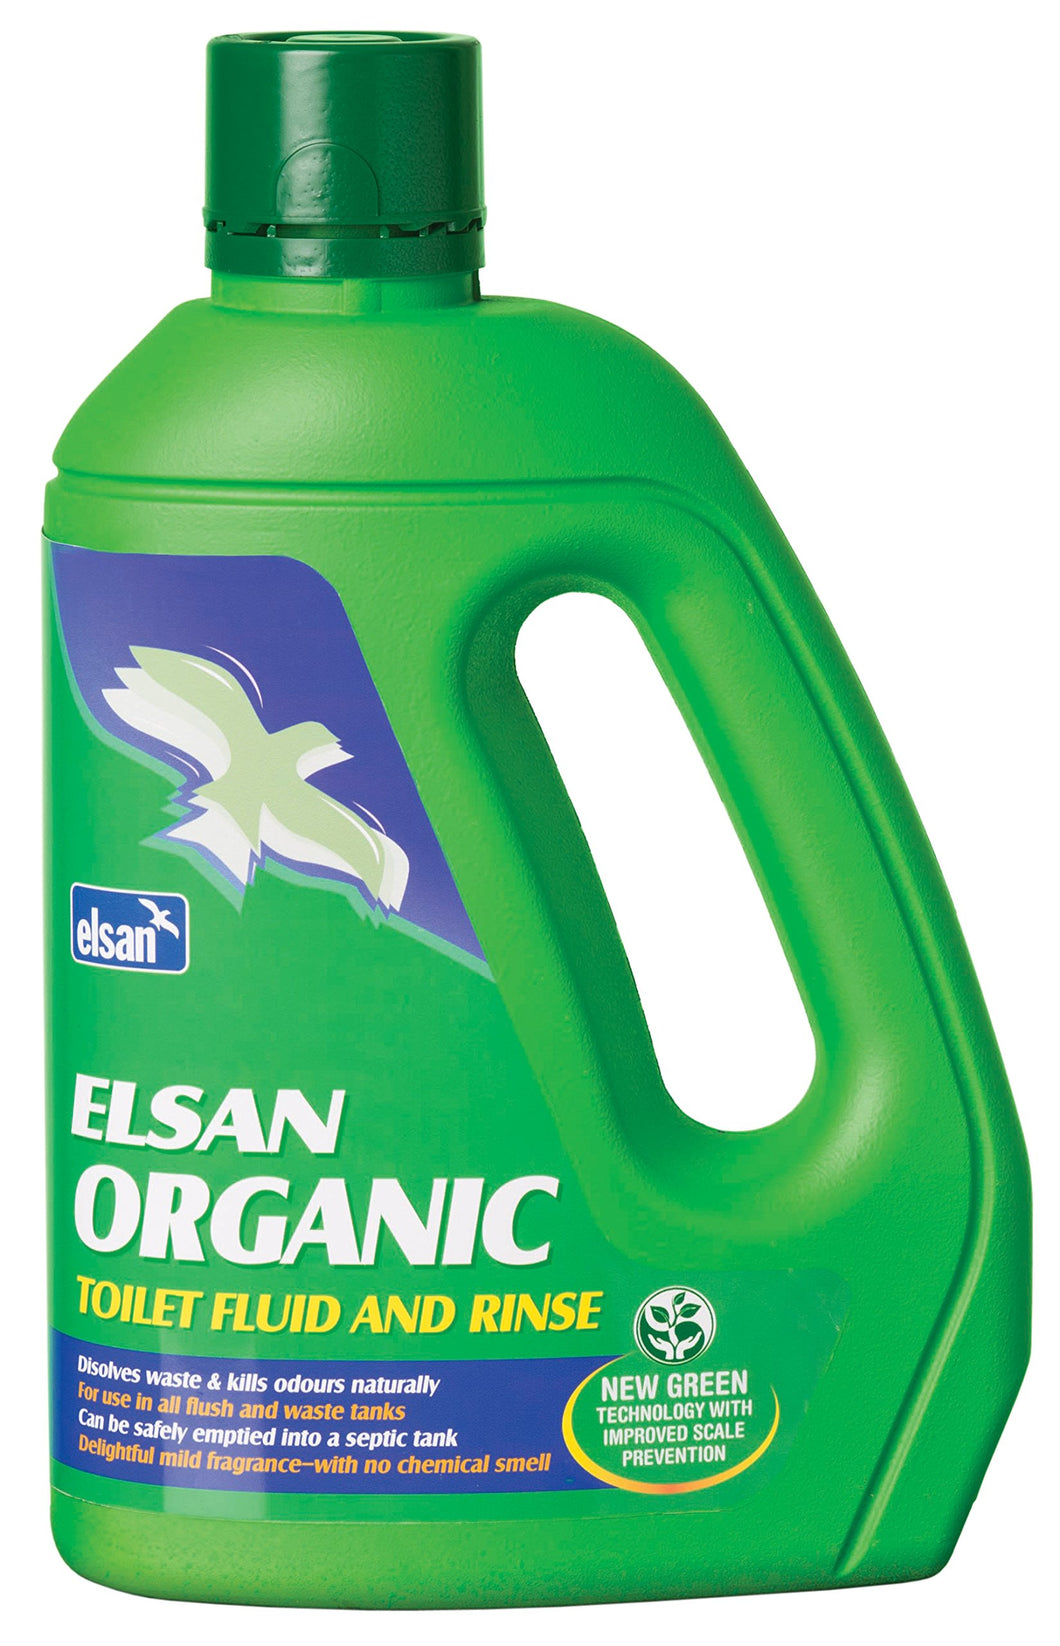 Elsan 2 Litre Green Organic Toilet Fluid and Rinse